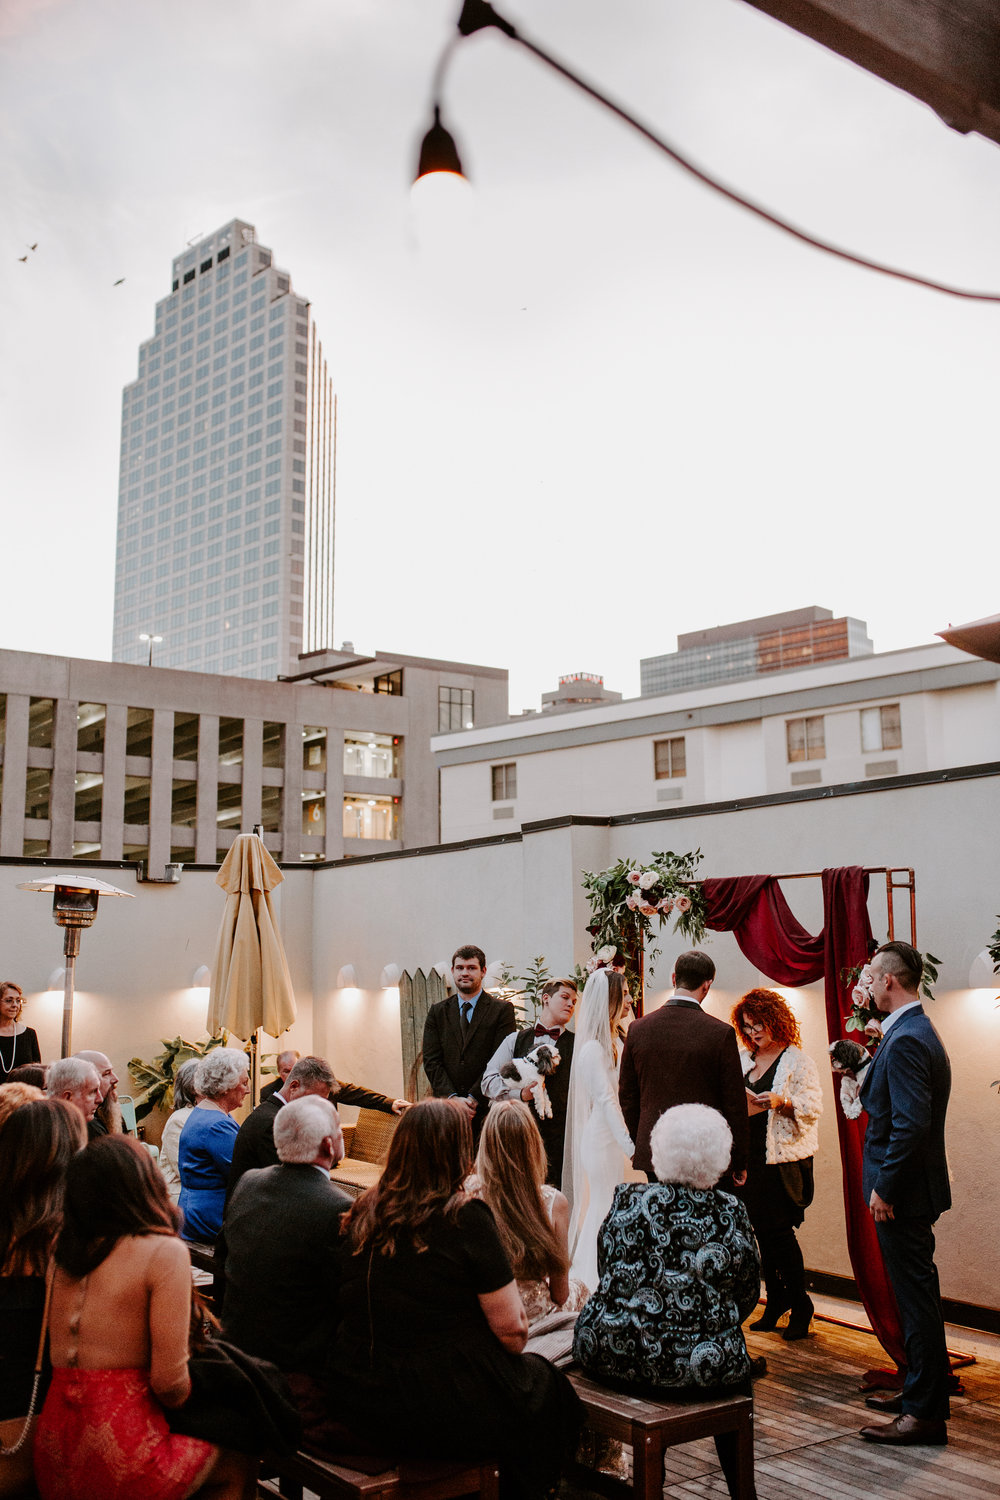 Catahoula Hotel Rooftop Wedding Ceremony New Orleans Wedding Photographer Ashley Biltz Photography39.jpg